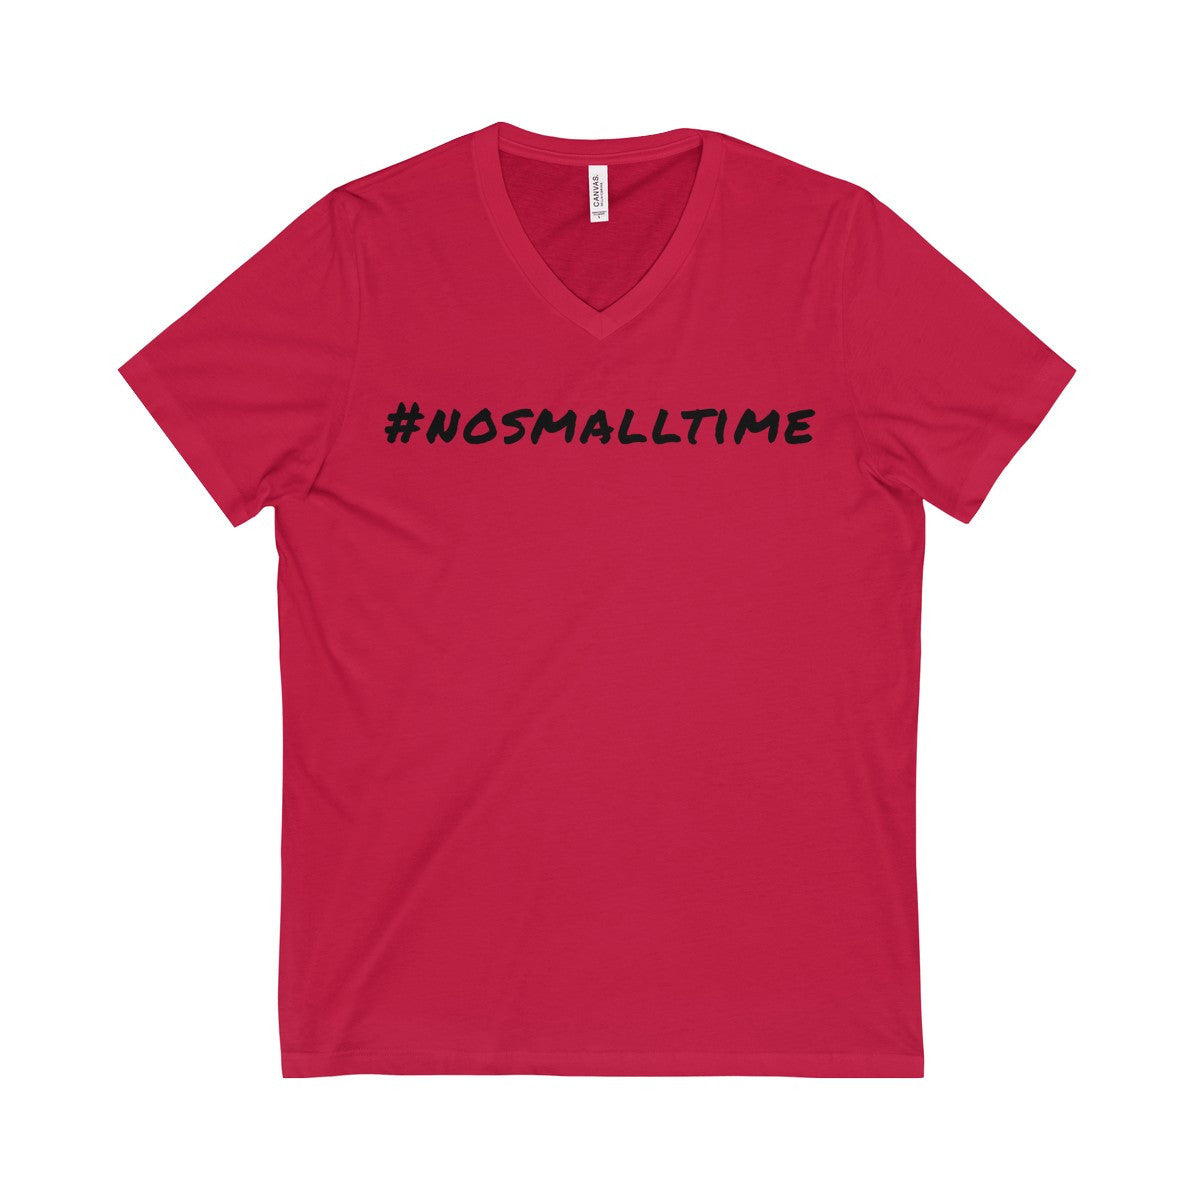 #nosmalltime Short Sleeve V-Neck Tee, Black Print